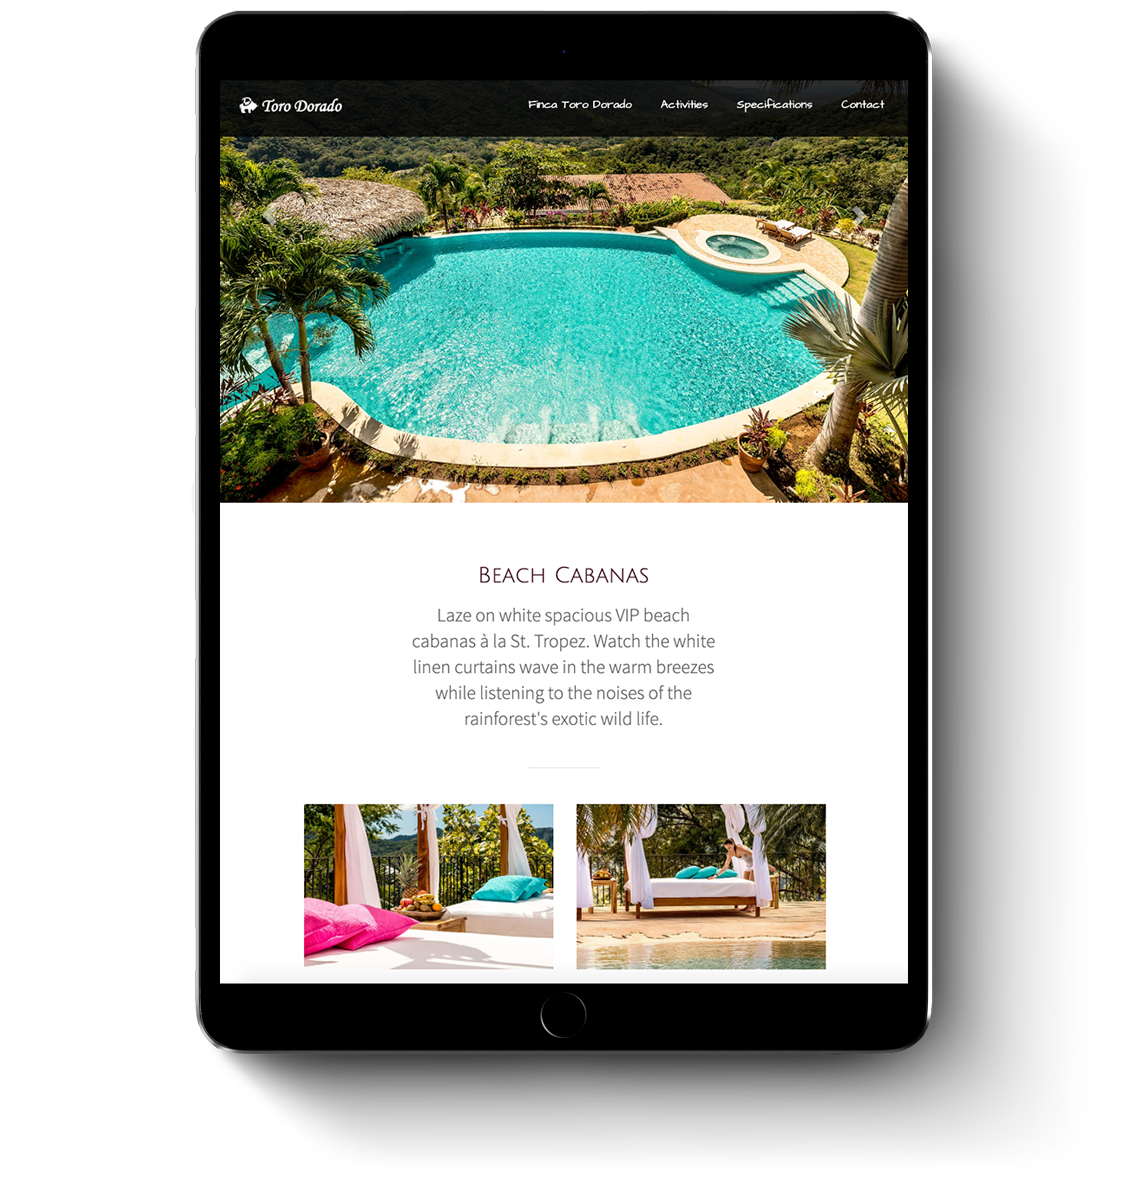 Toro dorado luxury property web design for mobile devices and tablets